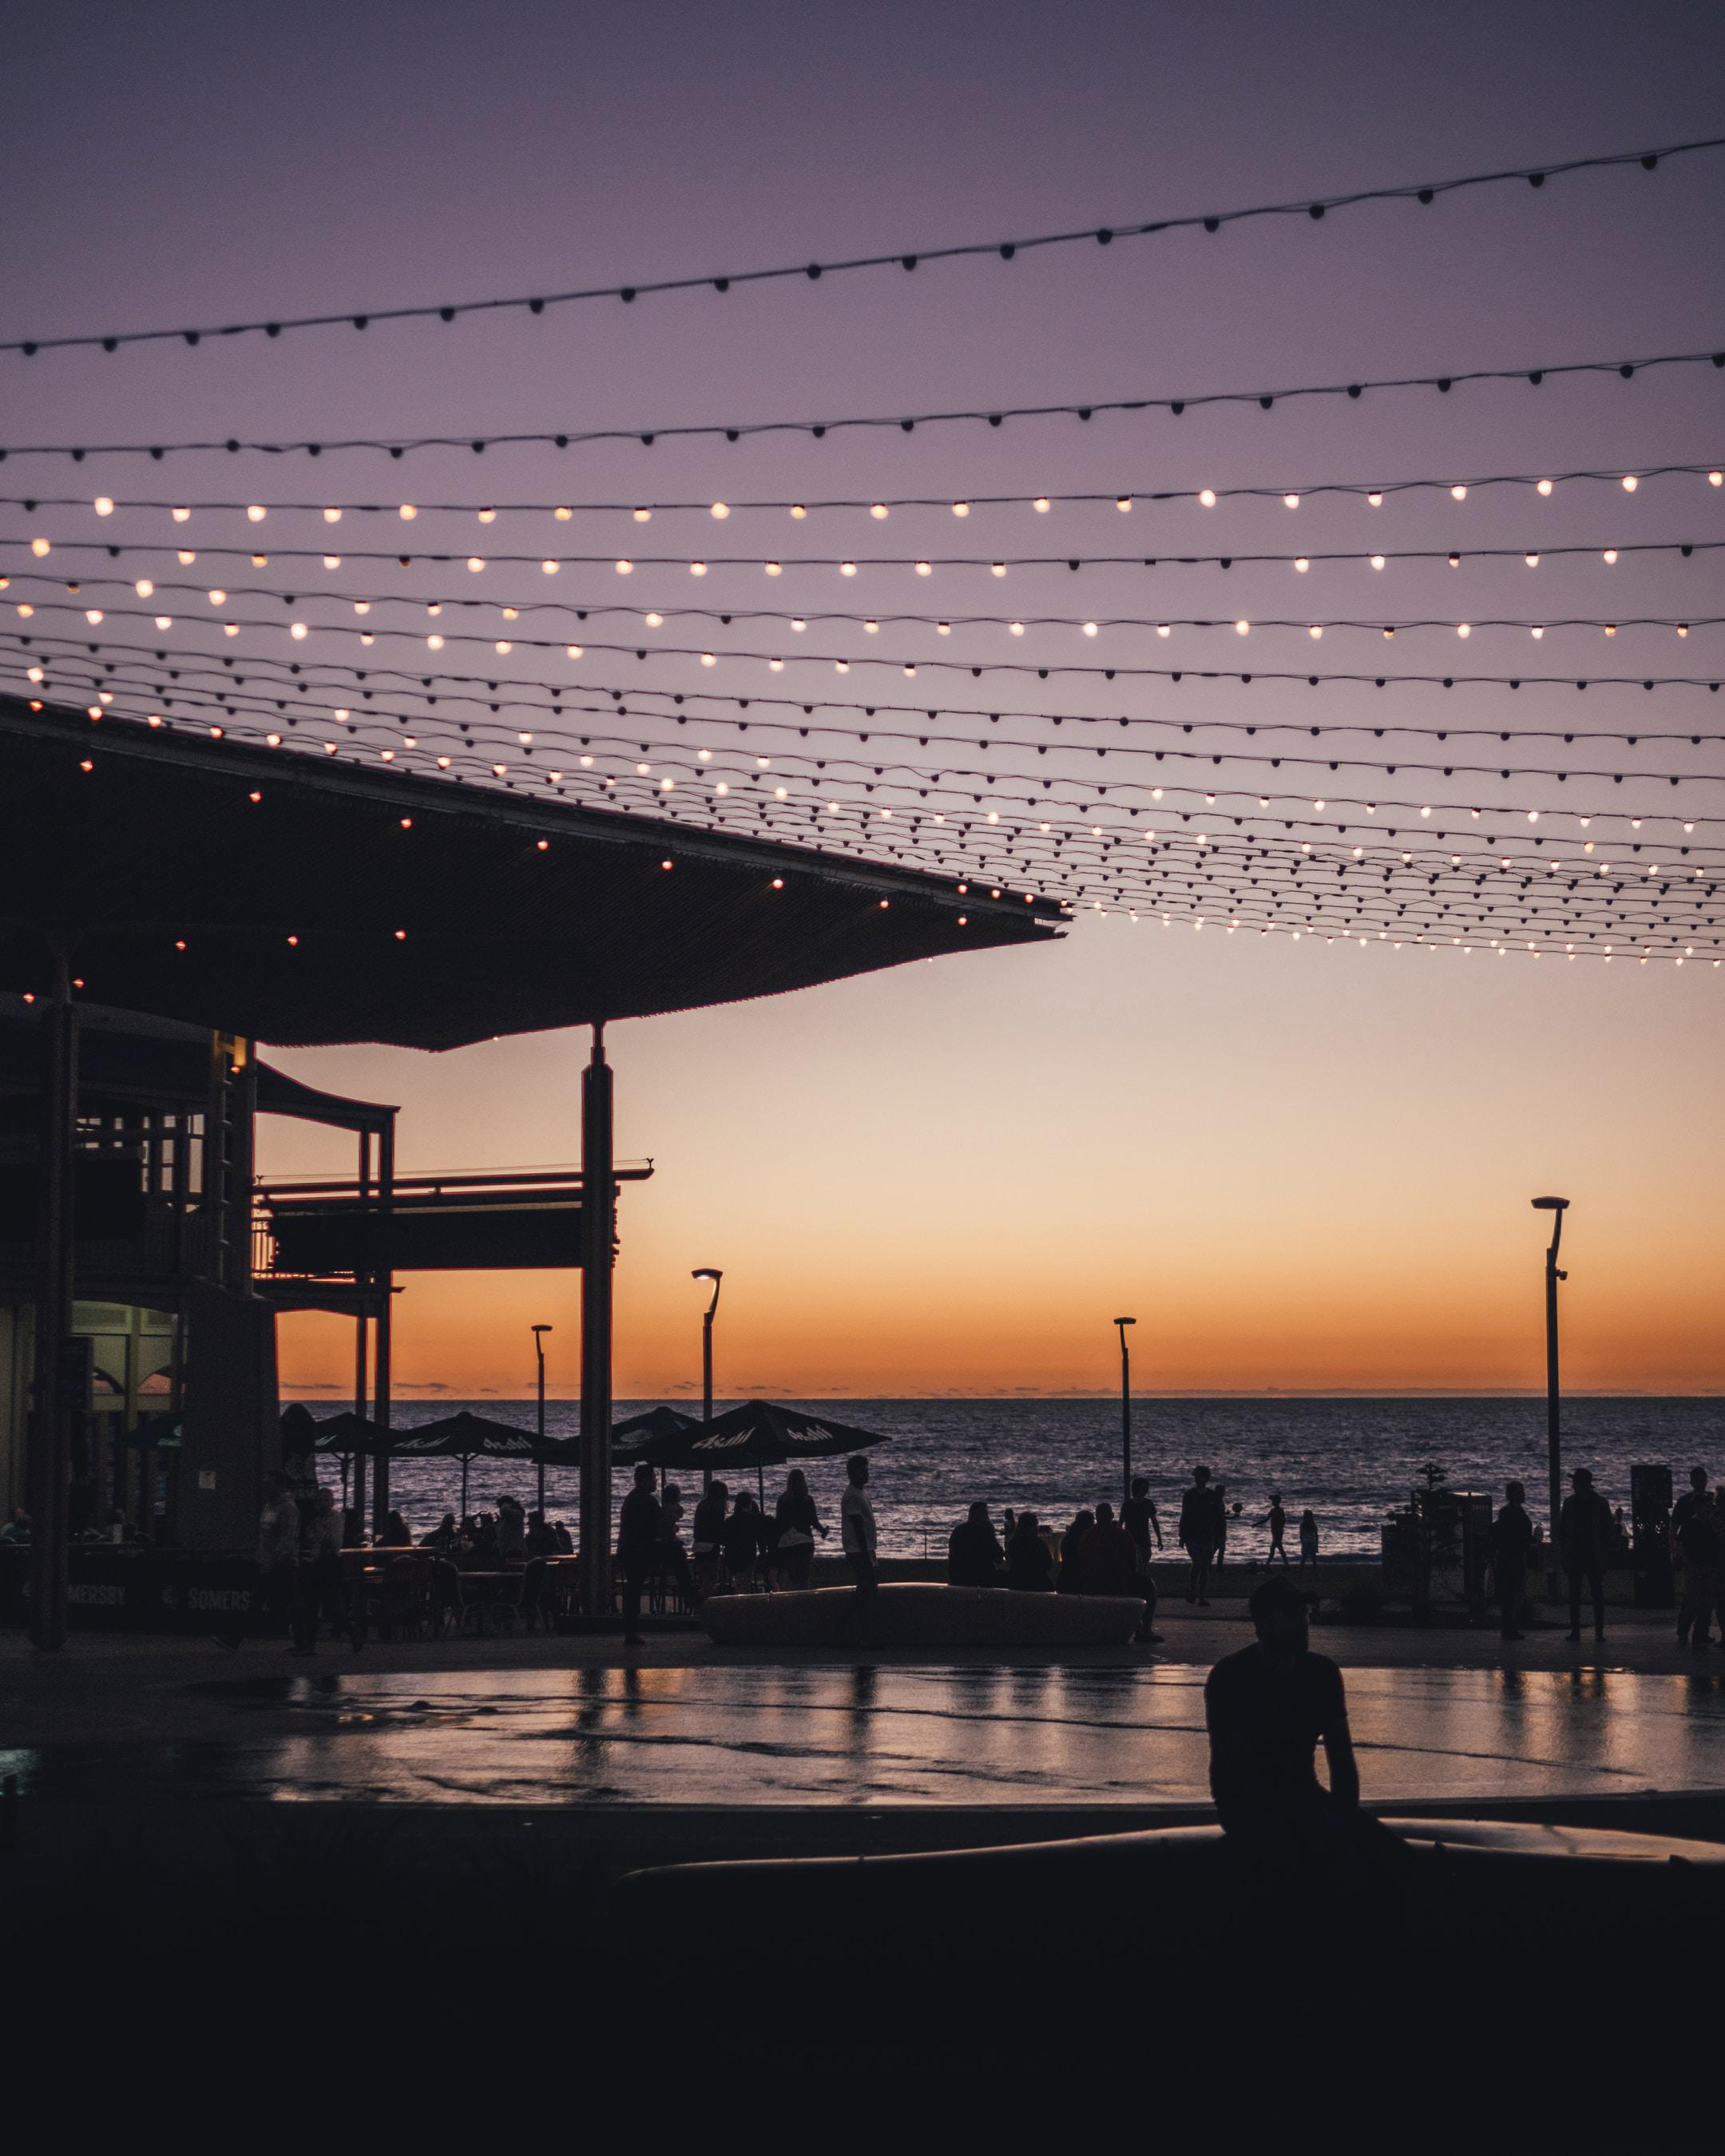 One of the most common places for me to shoot, Henley Square, South Australia. Capturing the locals enjoying a relaxing Sunday night for a classic Henley sunset.